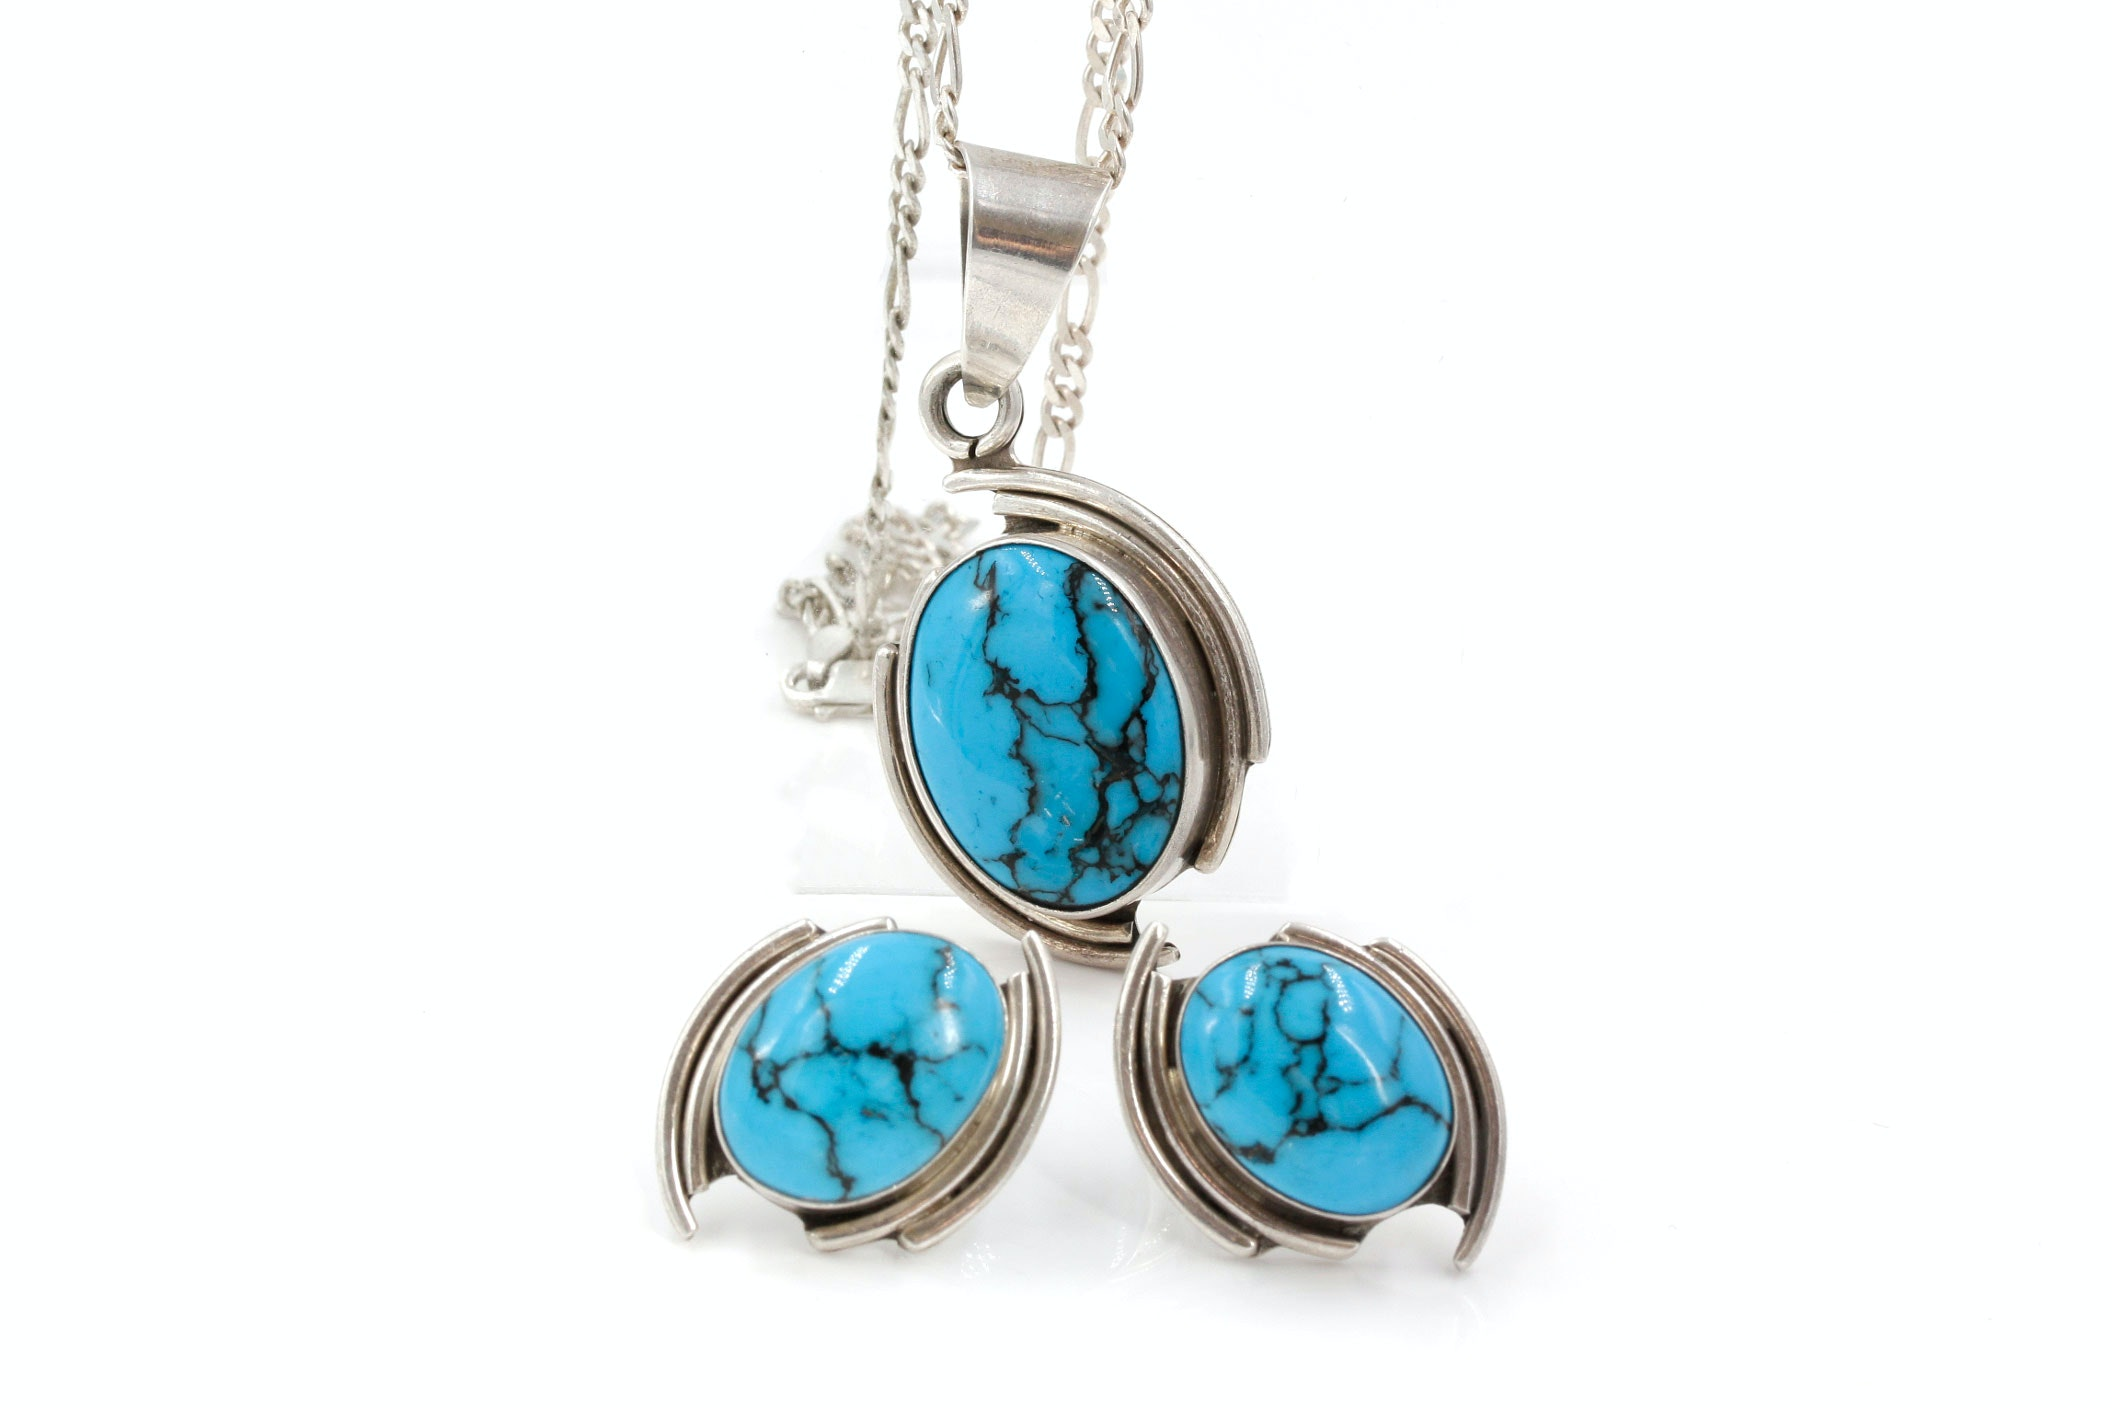 Sterling Silver Necklace and Earrings with Magnesite and Howlite